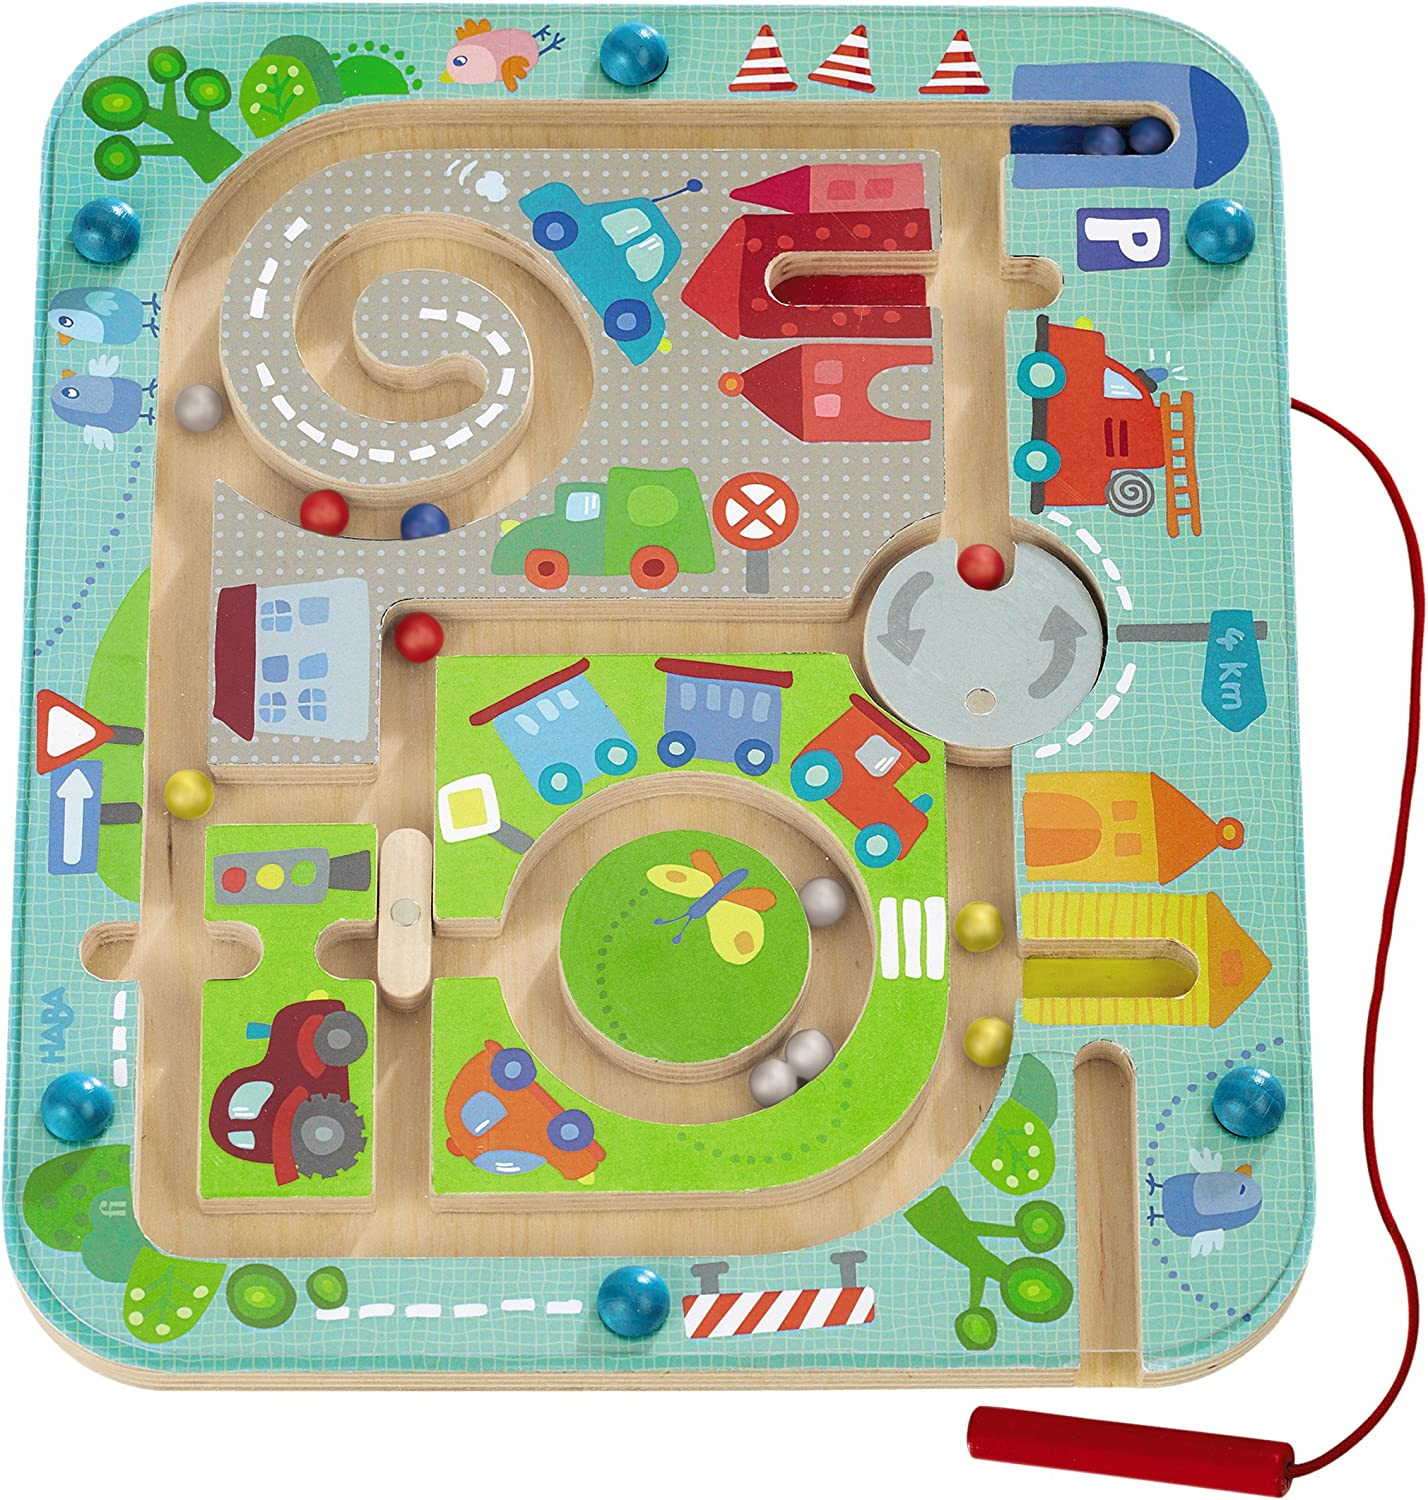 Top 7 Best Stem Toys For Toddlers (2020 Reviews) 5